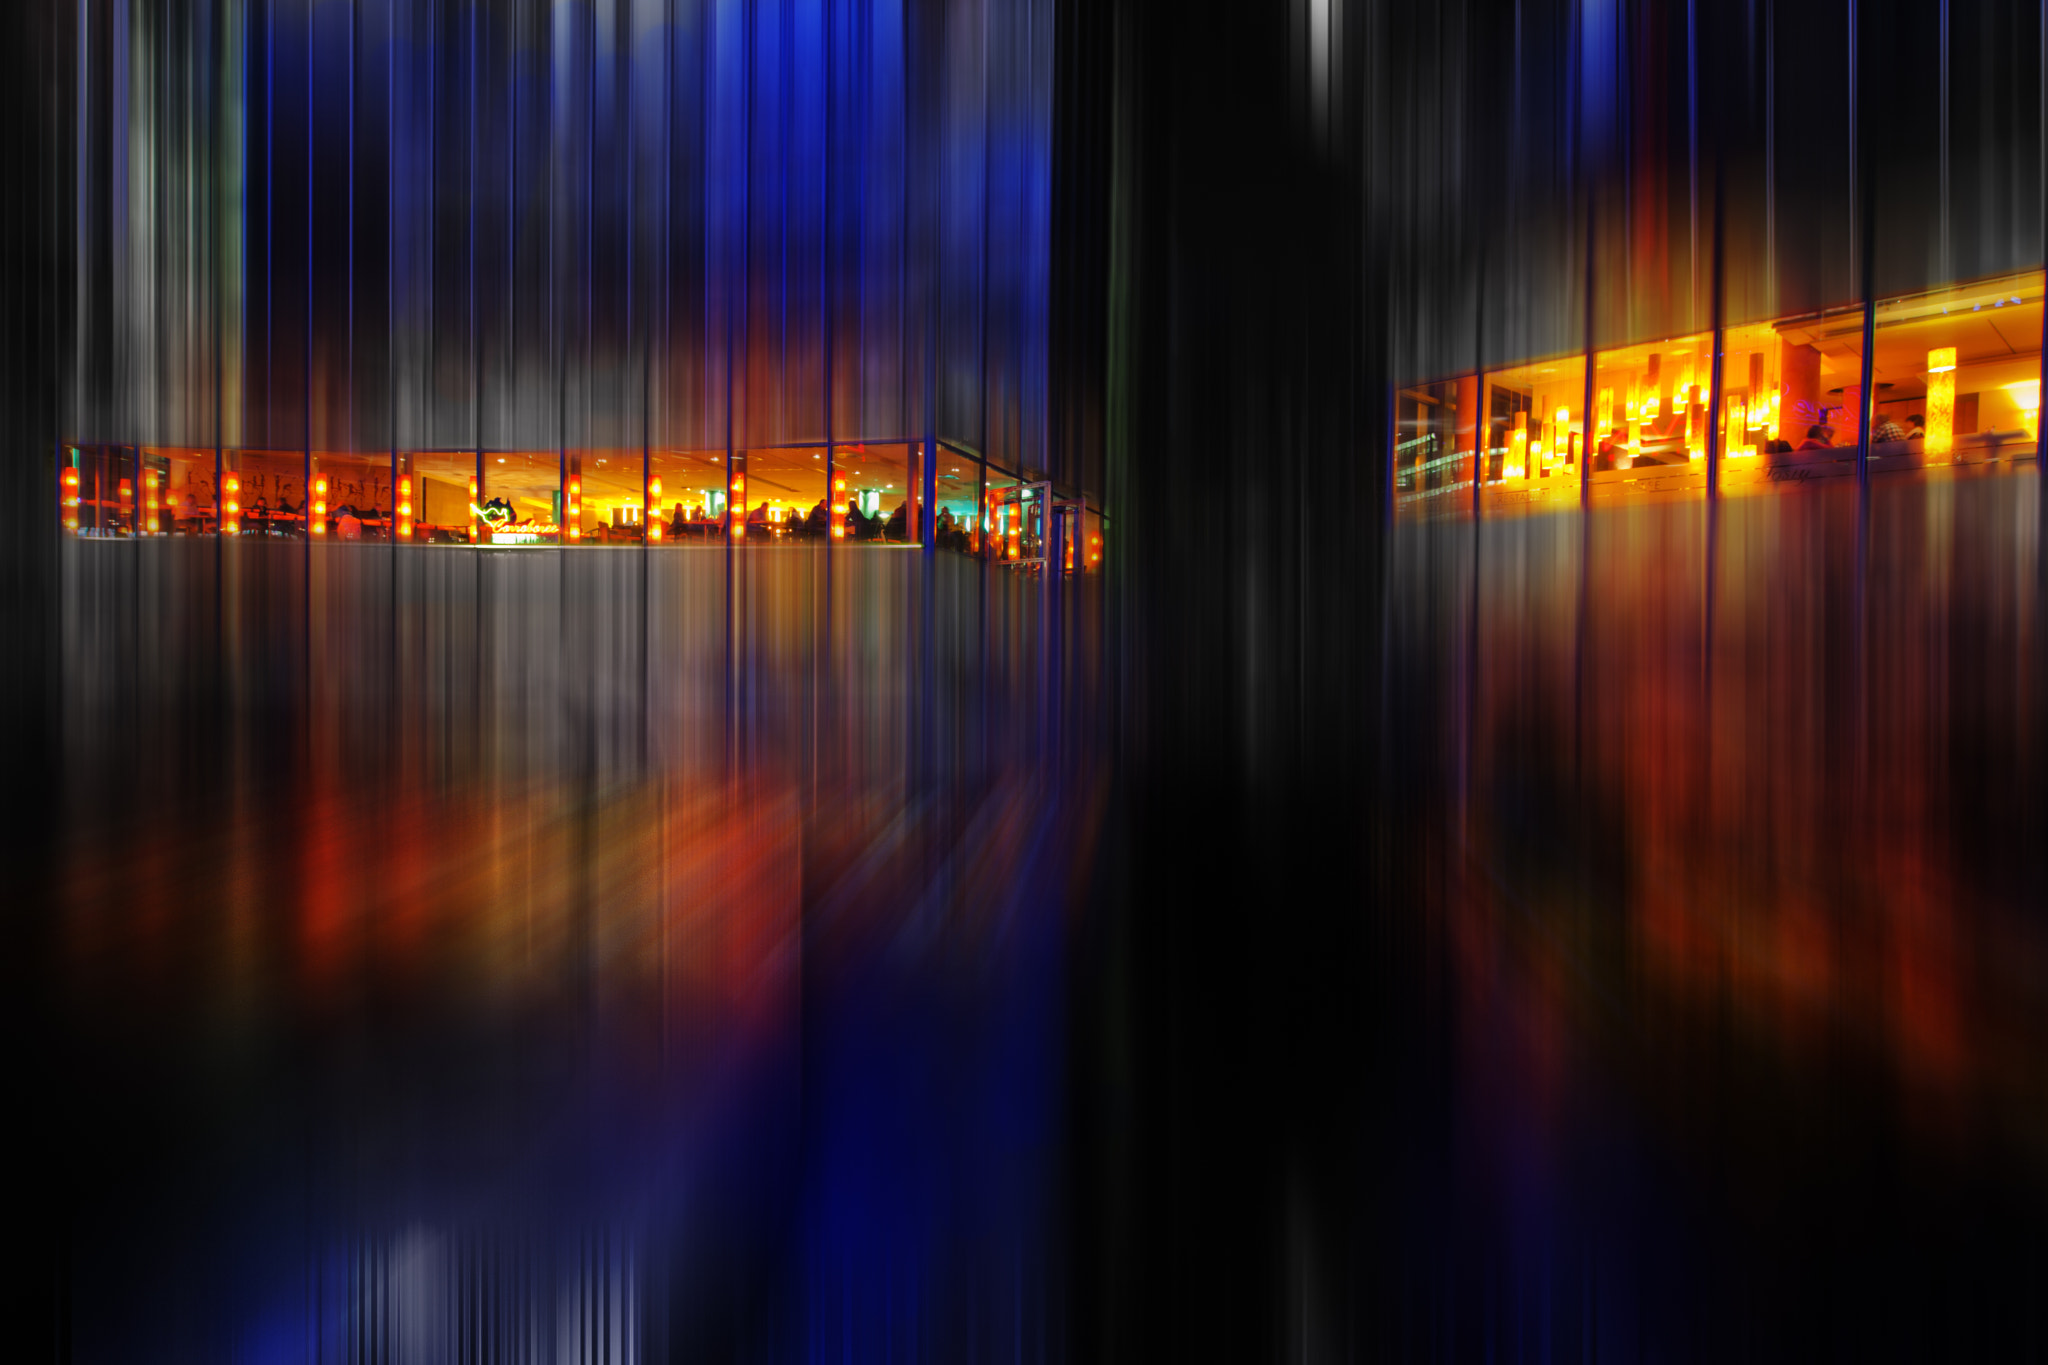 Photograph abstract night in Berlin by Christian Müller on 500px